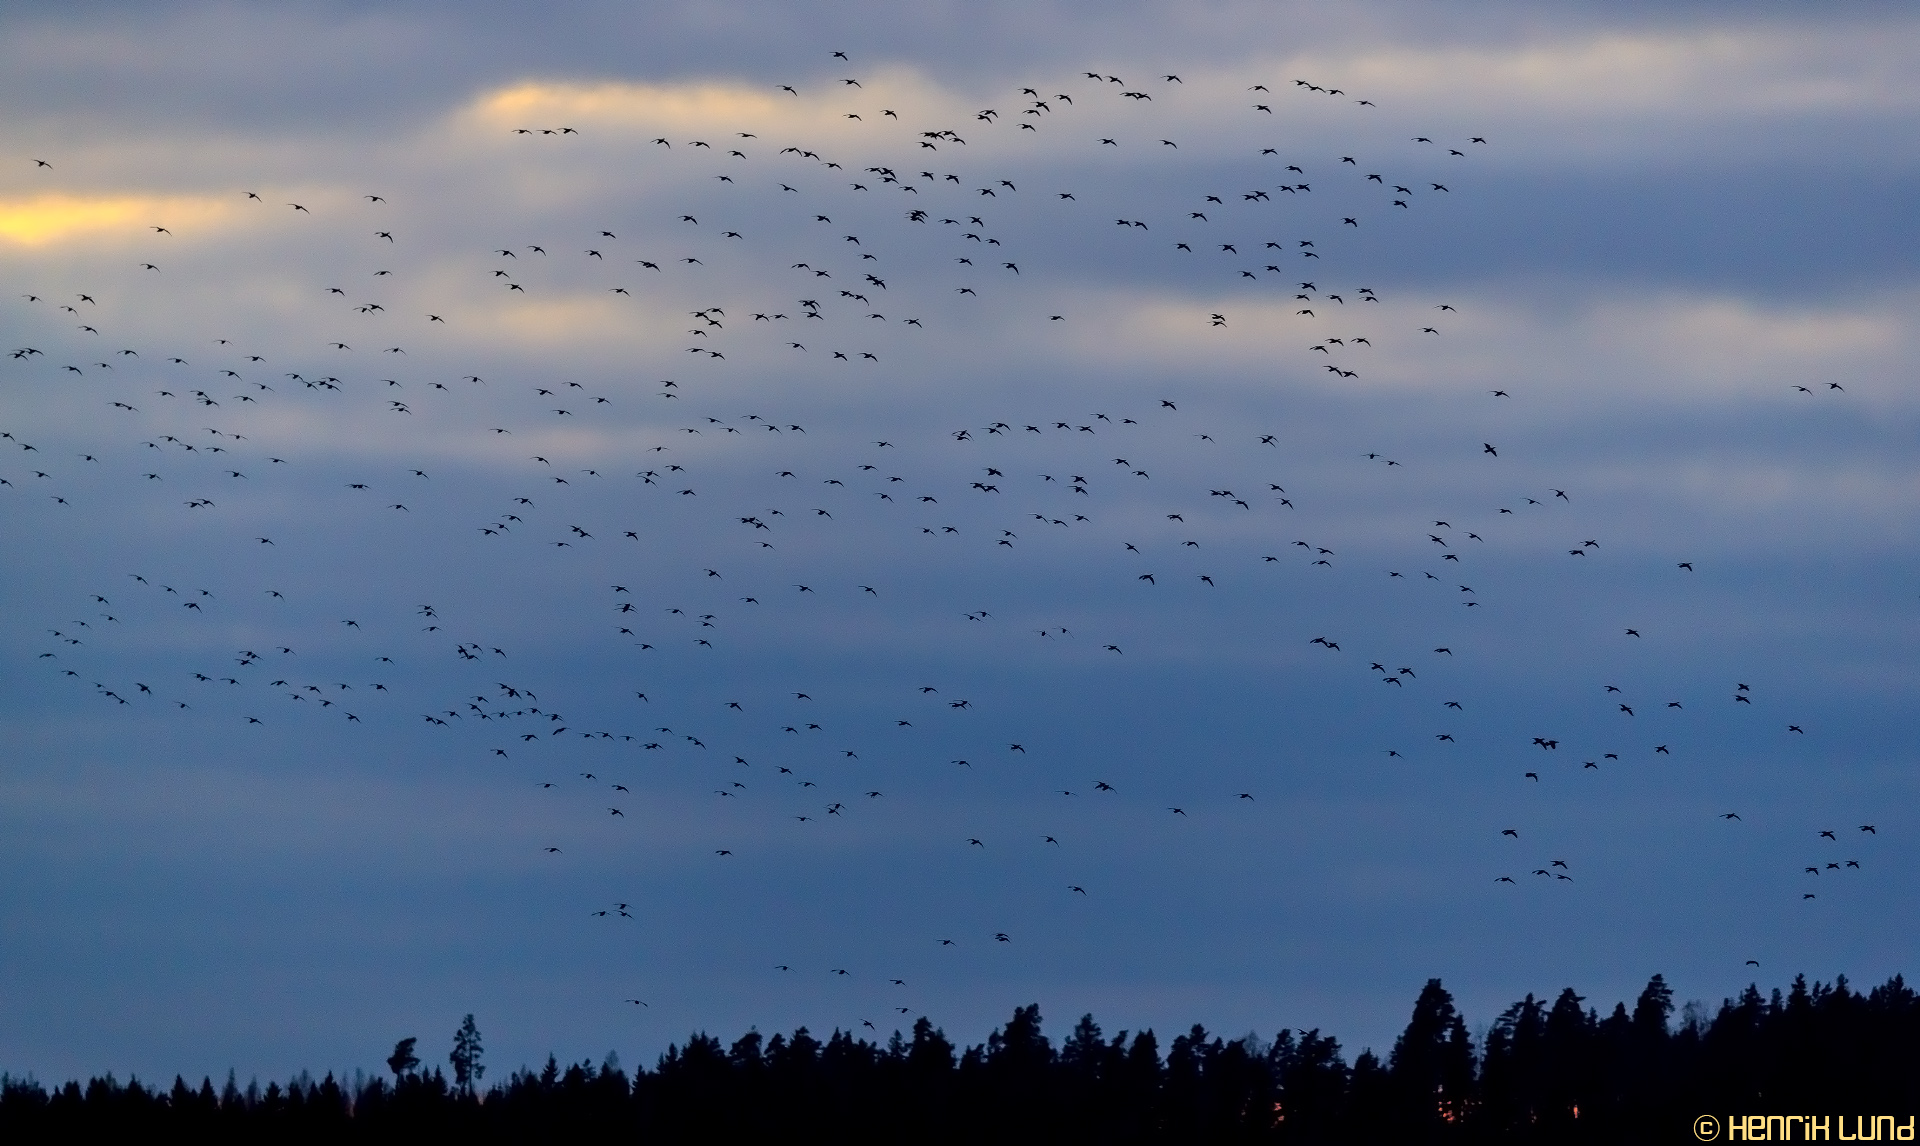 Migrating geese landing at lake Lapinjärvi, Finland. October 2016.